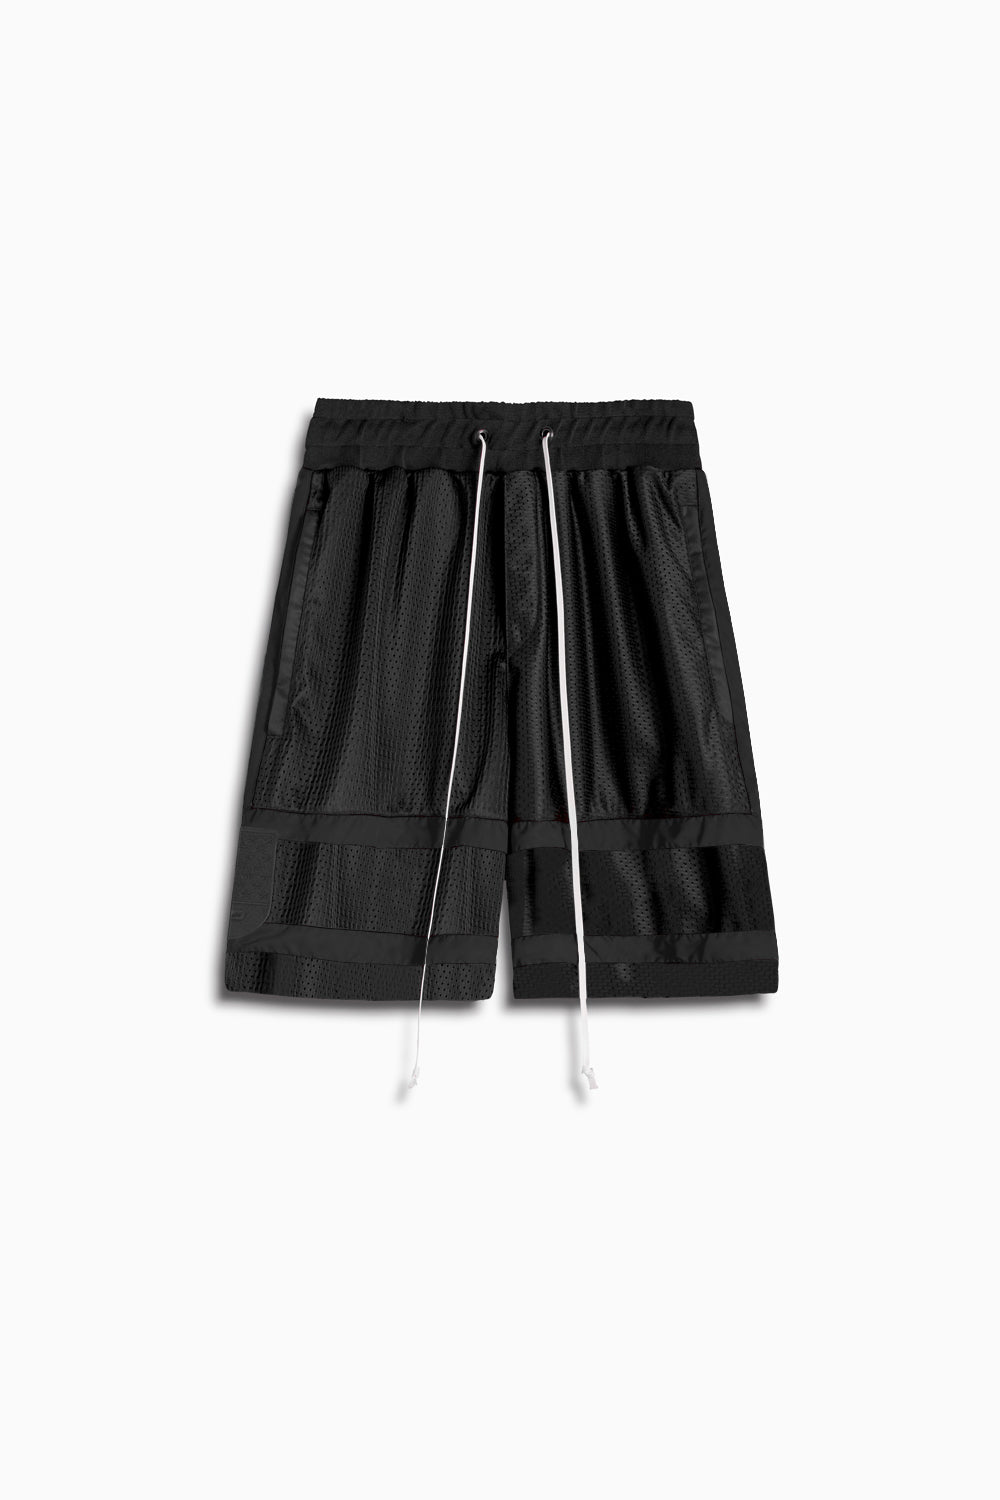 5.5 gym short in black/black by daniel patrick